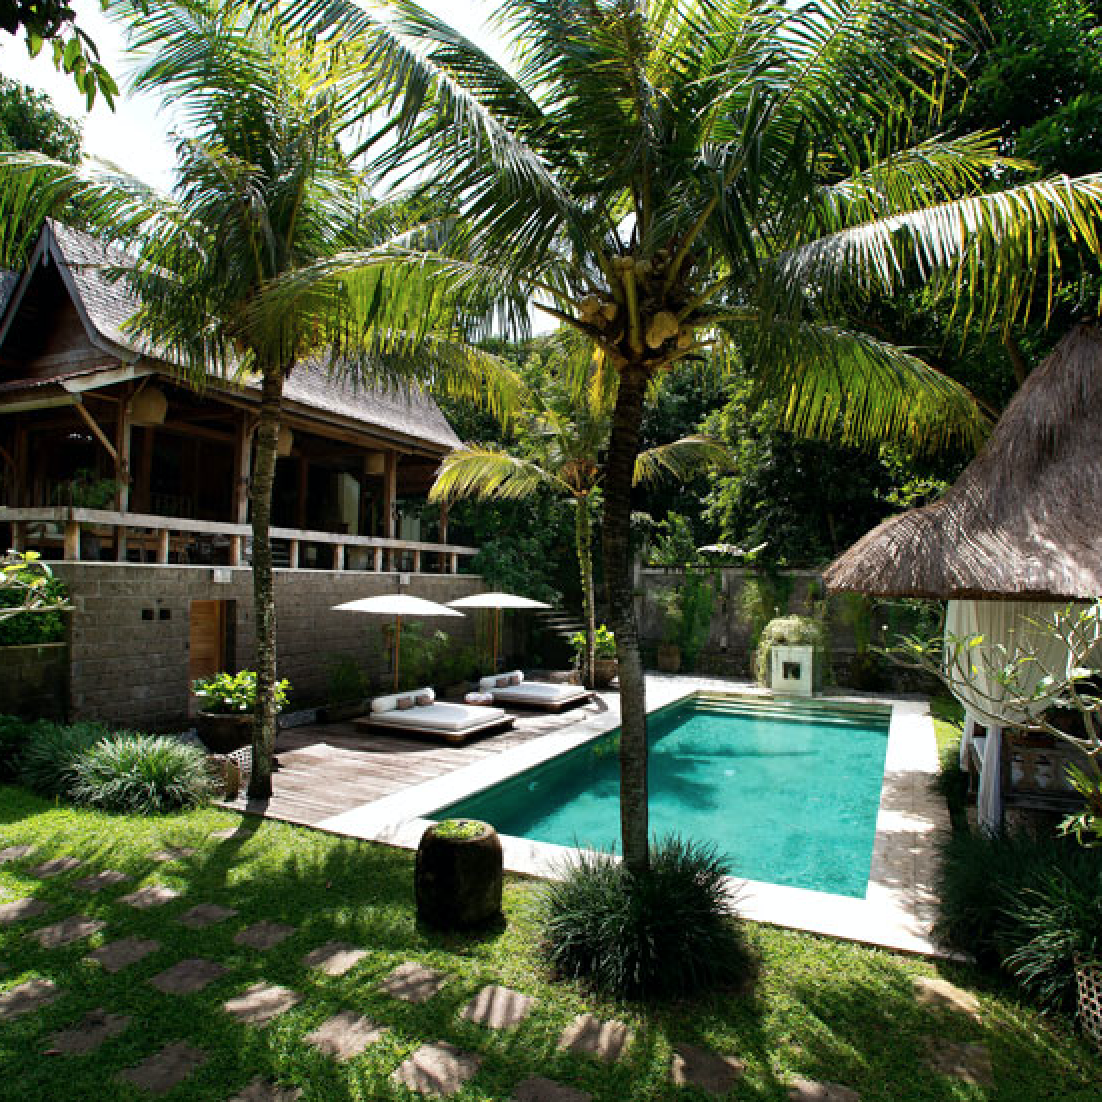 KALAPA RESORT & SPA, CANGGU, 1-2 bedrooms, $105-$200 per night